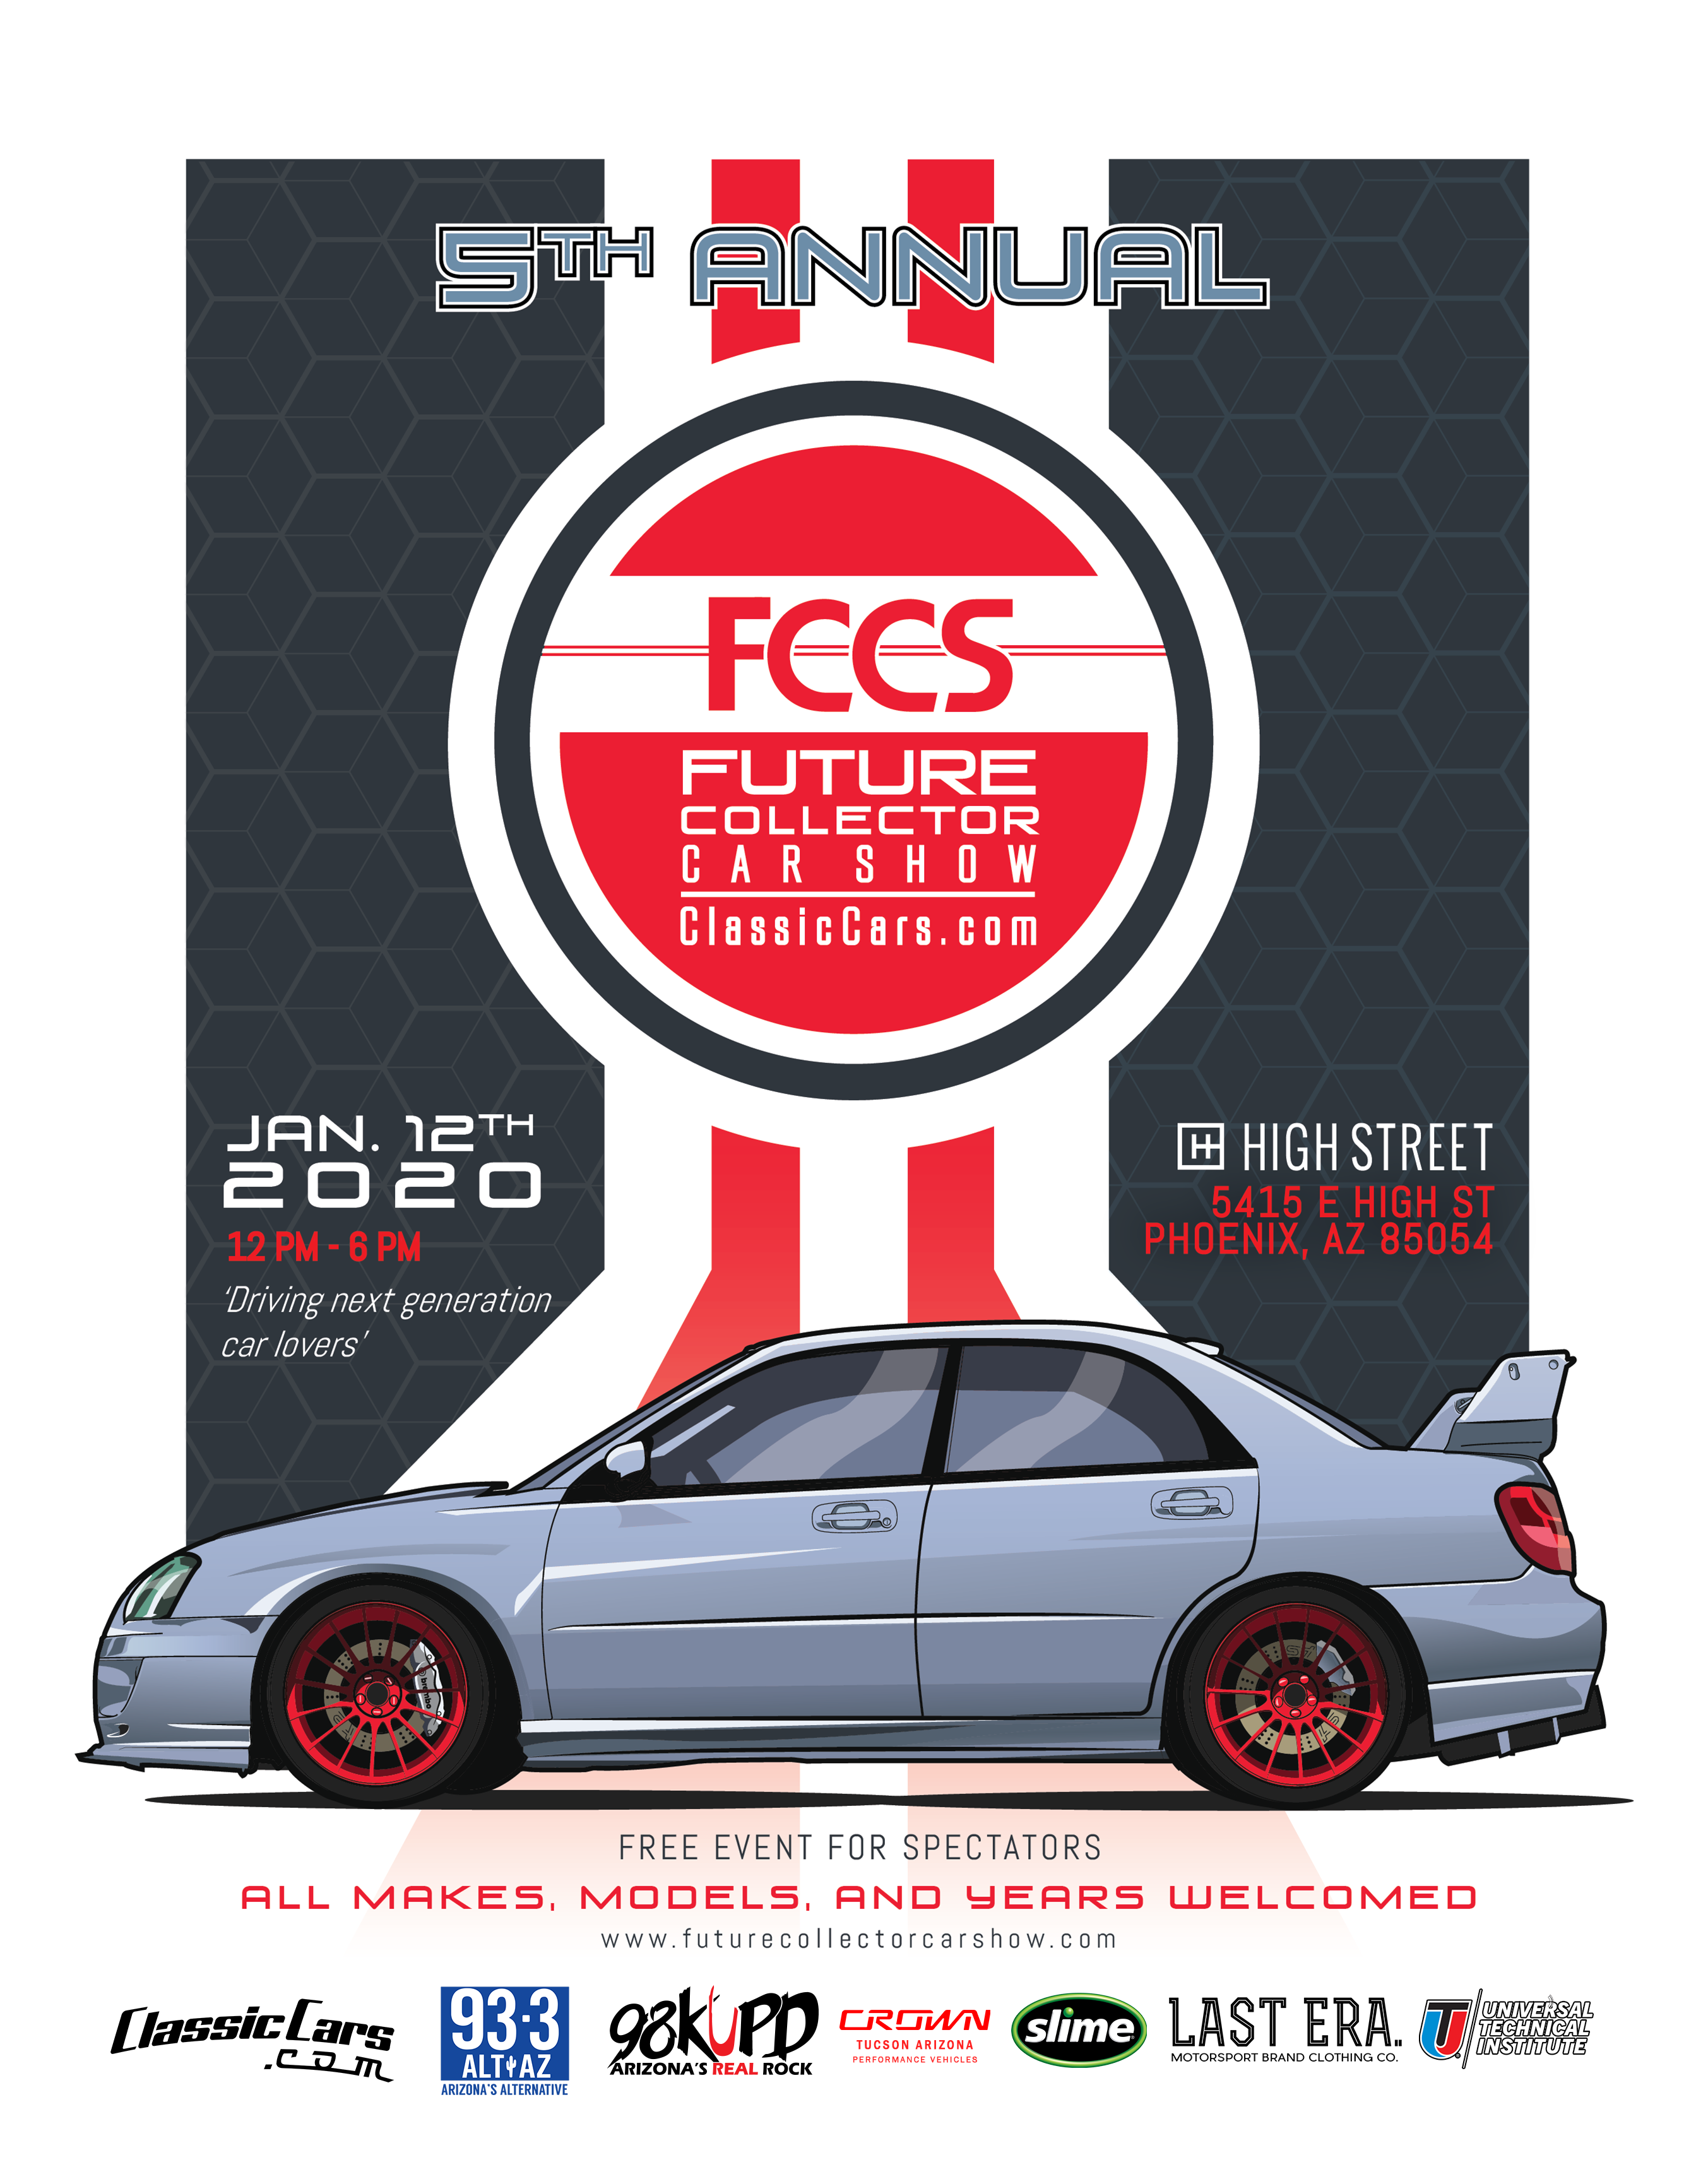 Celebrating the 5th anniversary of the Future 'Collector' Car Show with positive changes